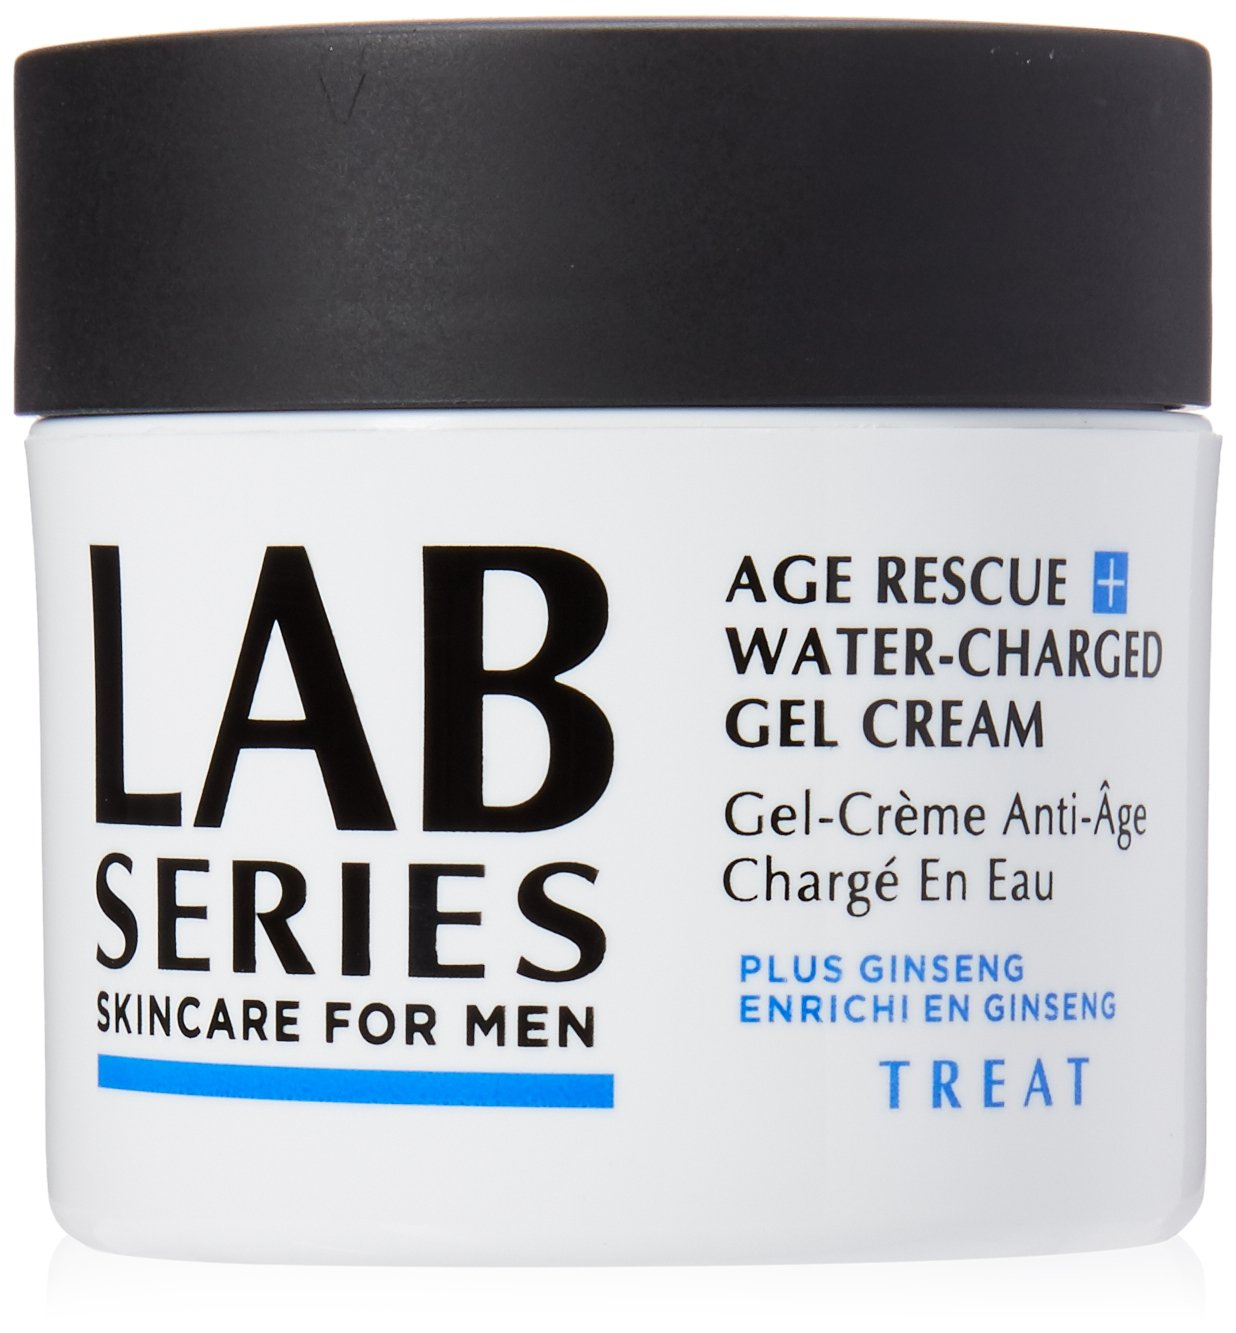 Lab Series - AGE RESCUE+ Water-Charged Gel Cream Limited Edition Bonus Size